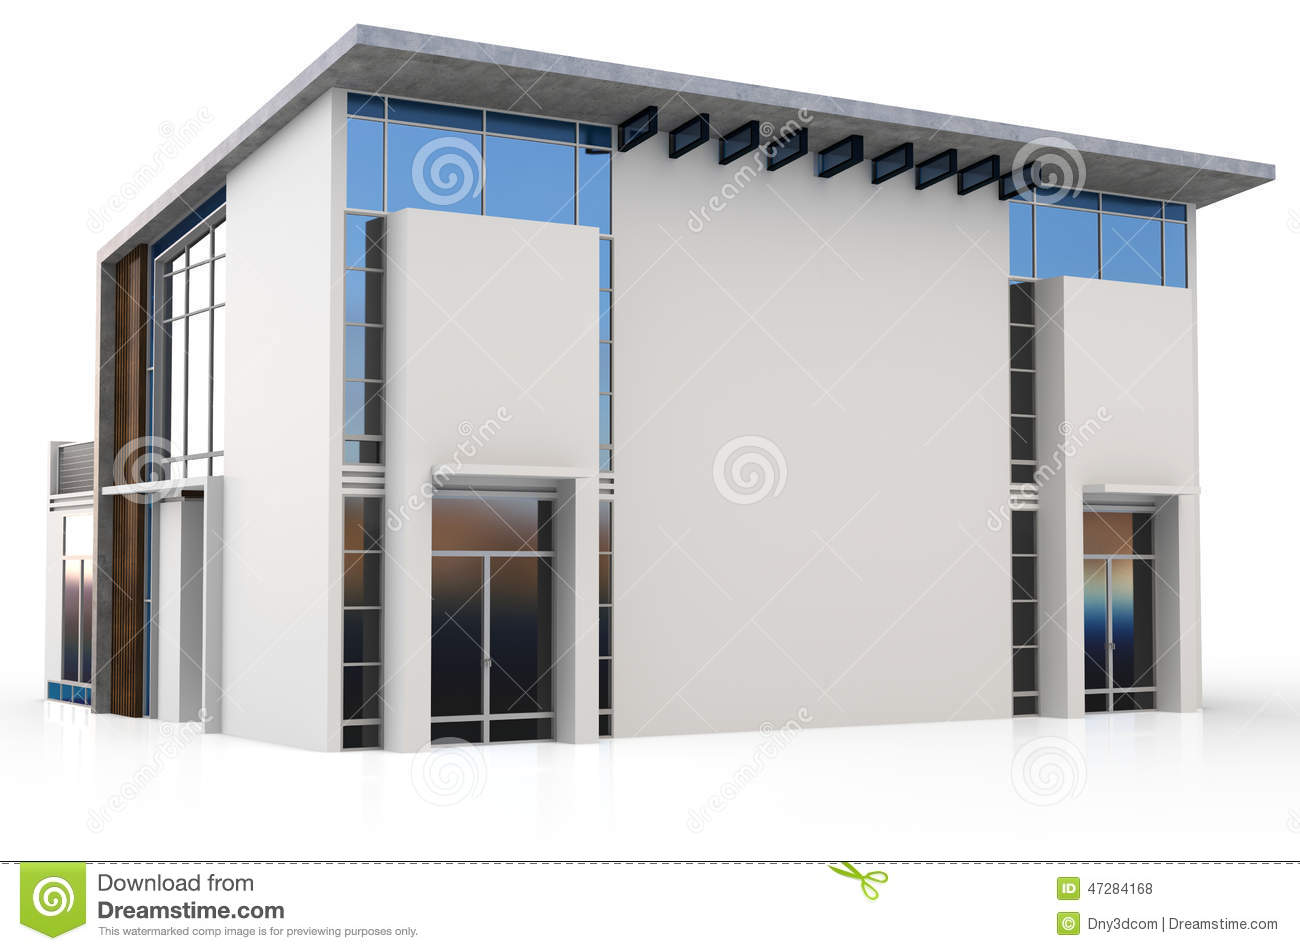 Maison 3d duplex moderne illustration stock image 47284168 for Maison duplex moderne